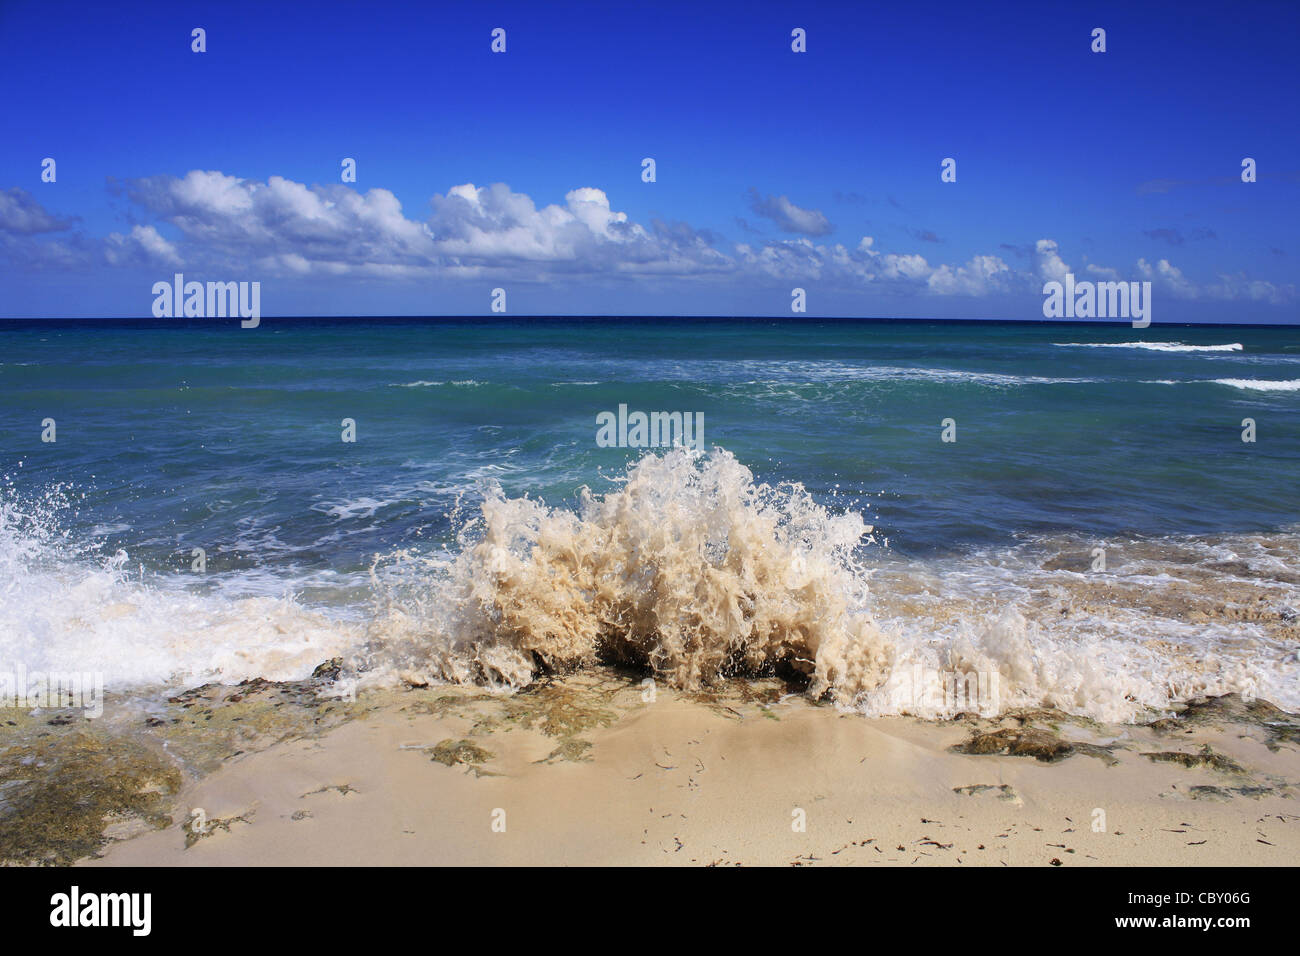 The crashing waves on Montego Bay, Jamaica - Stock Image